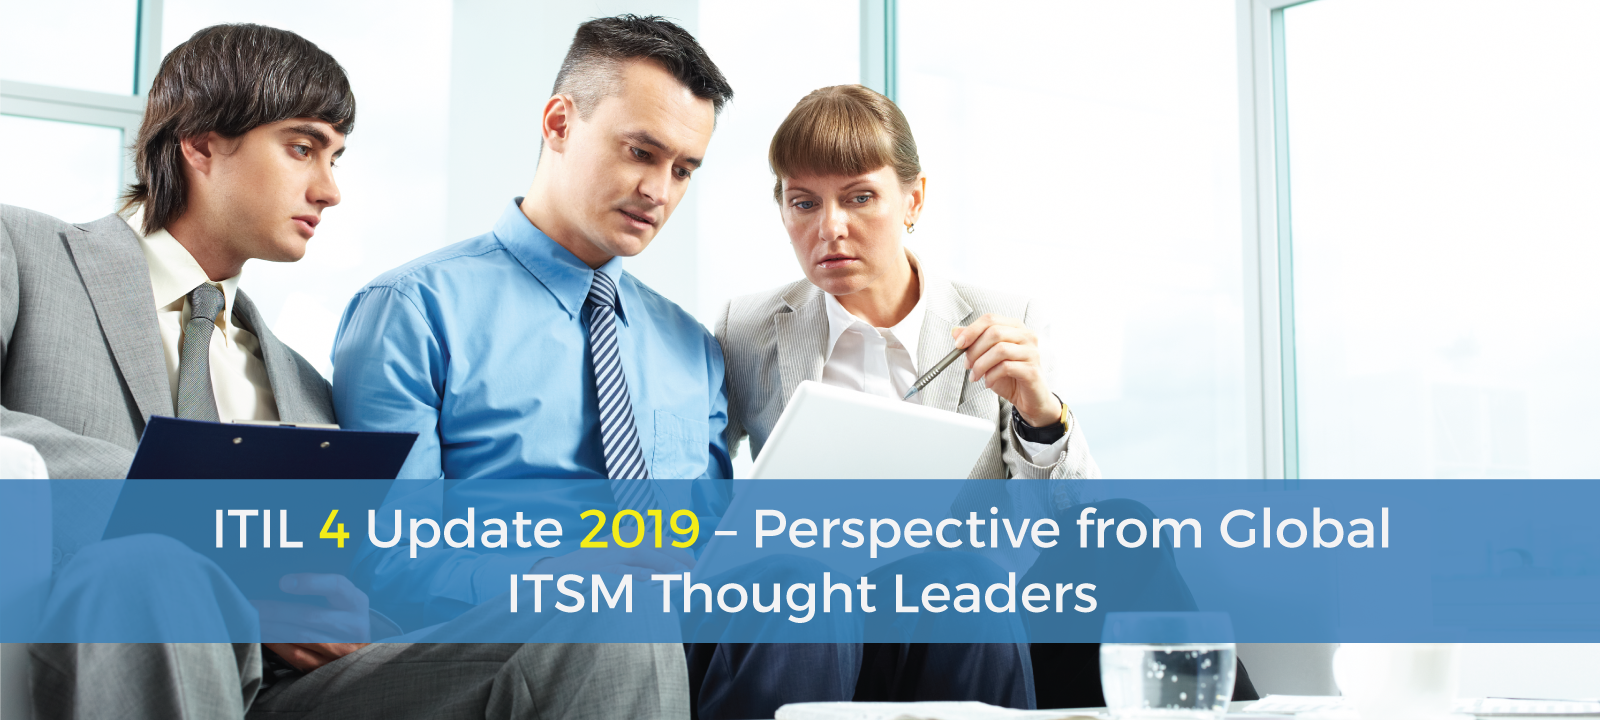 Itil 4 Update 2019 Perspective From Global Itsm Thought Leaders